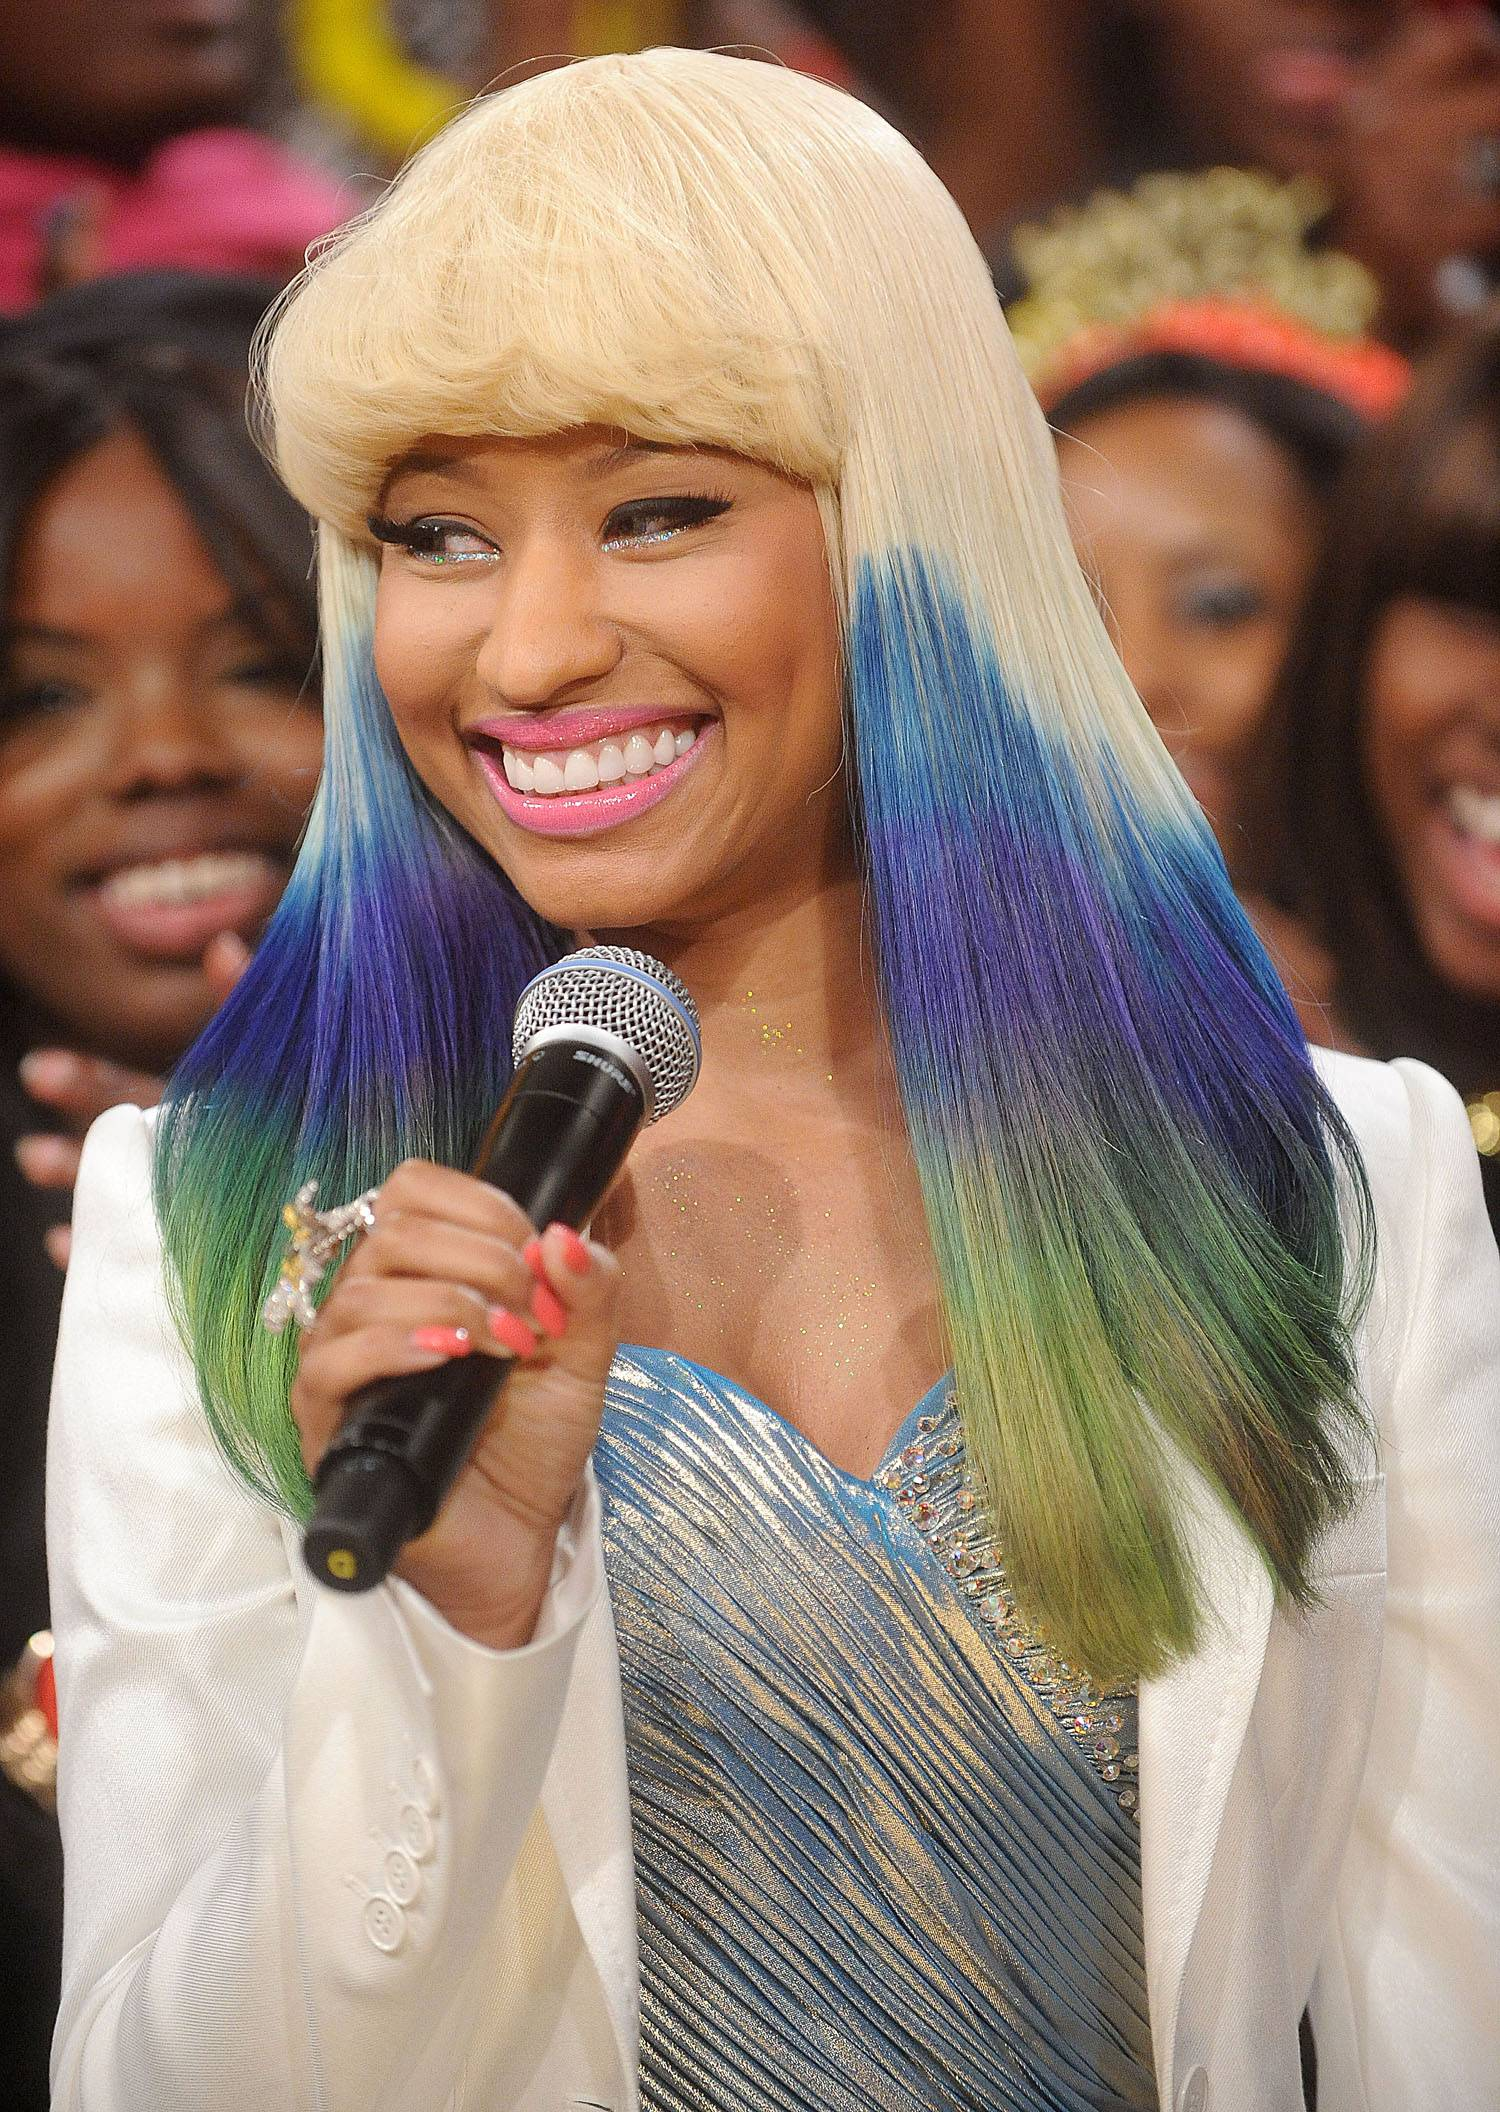 """First Female Artist With a No. 1 Single on the Rap Charts Since 2002 - The accidental single """"Your Love"""" leaked and became a radio hit for Minaj in the summer of 2010. The track quickly ascended to No. 1 on the rap charts, making the Queens-bred rapper the first female artist to top the charts without a feature since 2002.(Photo: Brad Barket/PictureGroup)"""